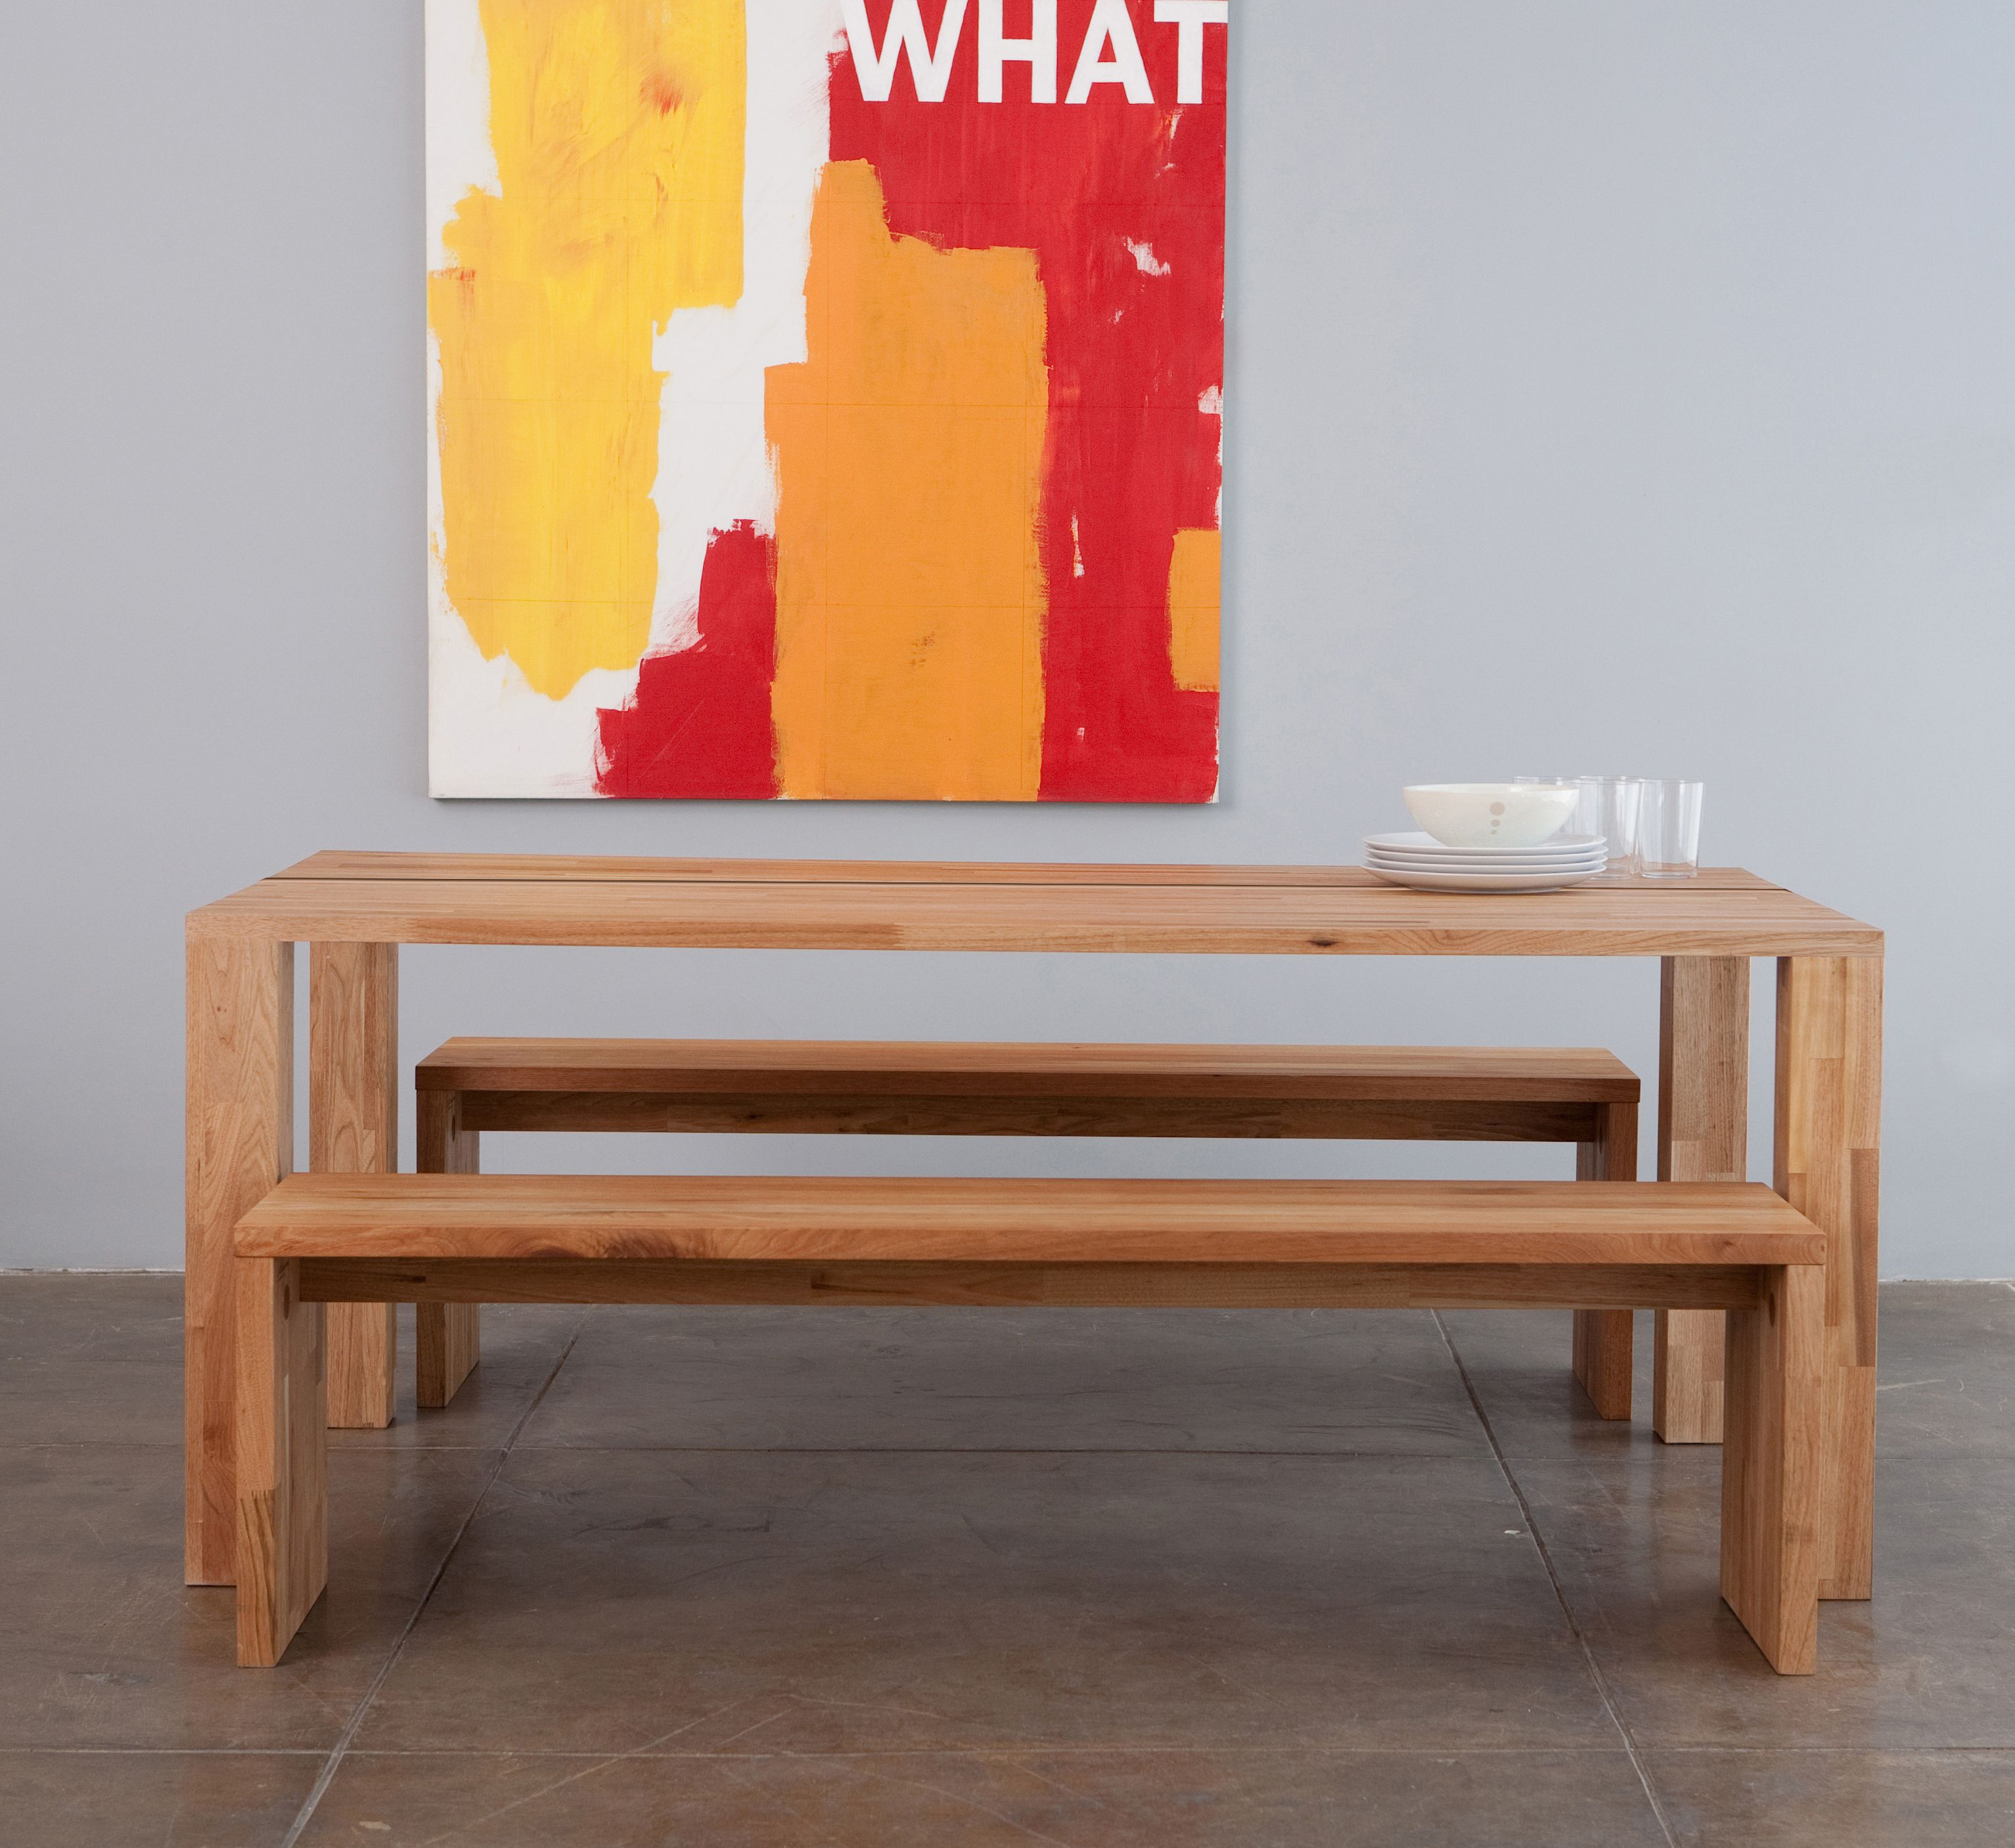 Ive always loved this table the mash studios lax edge dining table click through for others